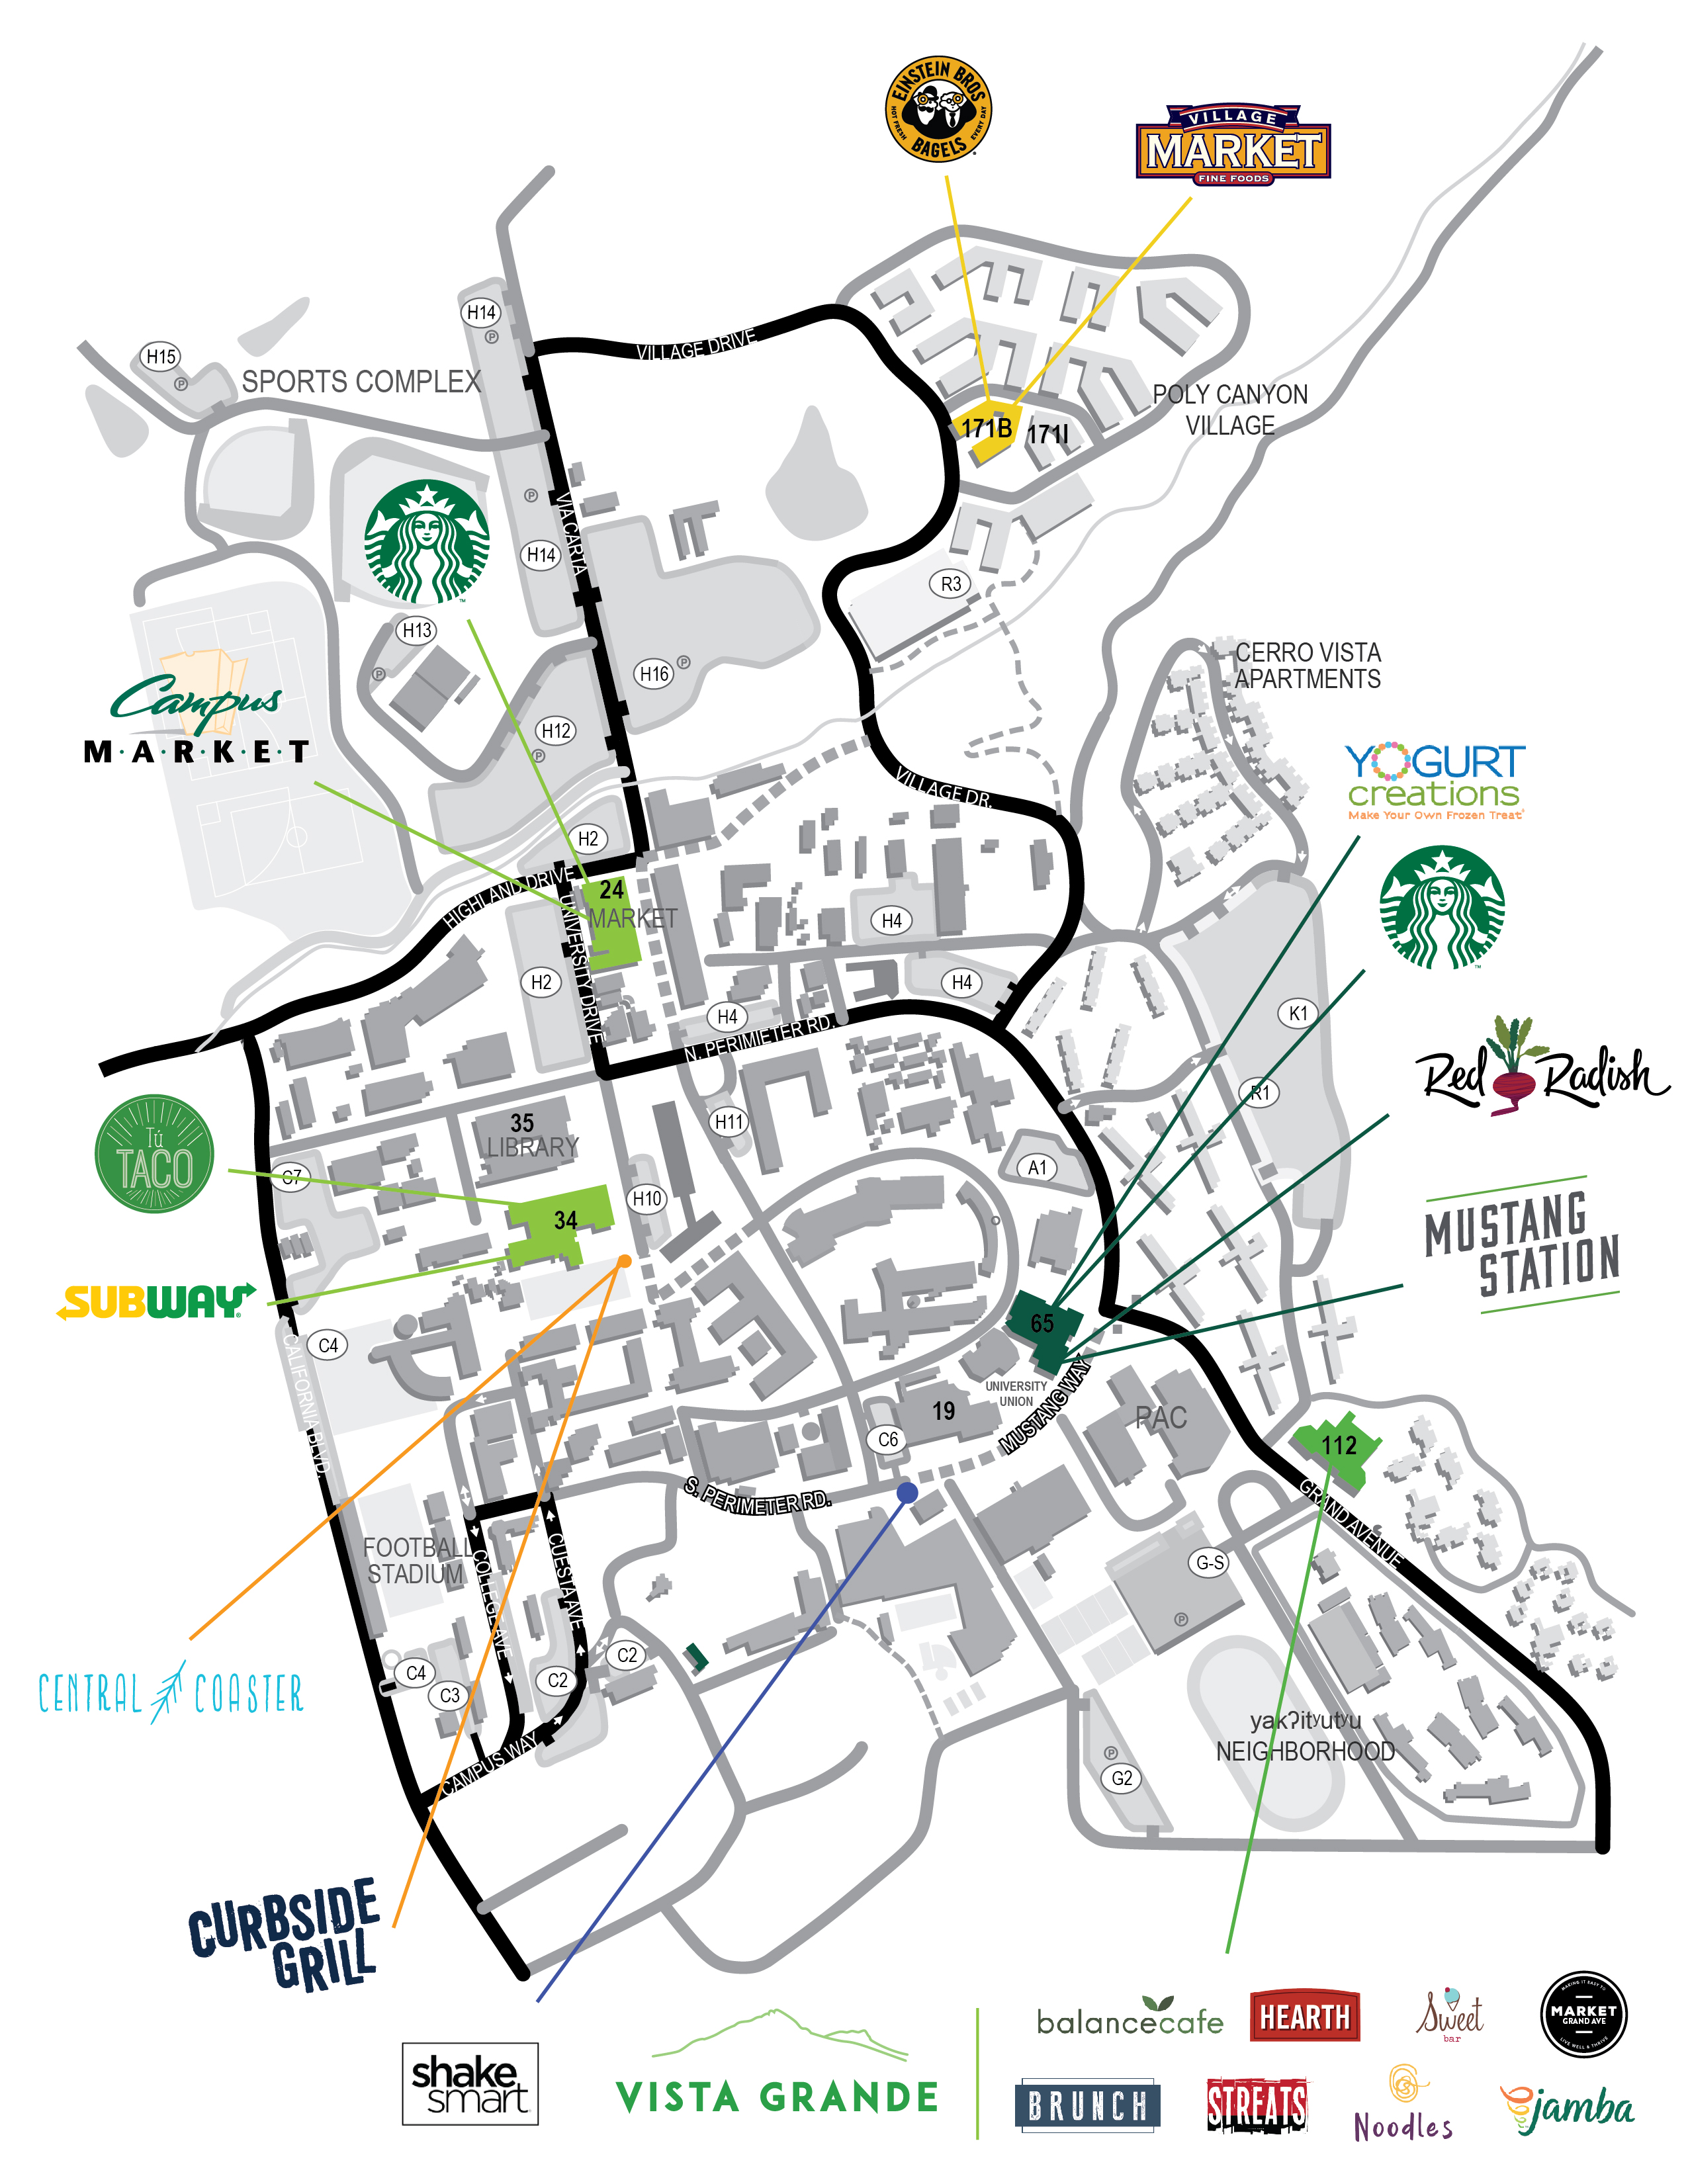 Map of Campus Dining locations at Cal Poly